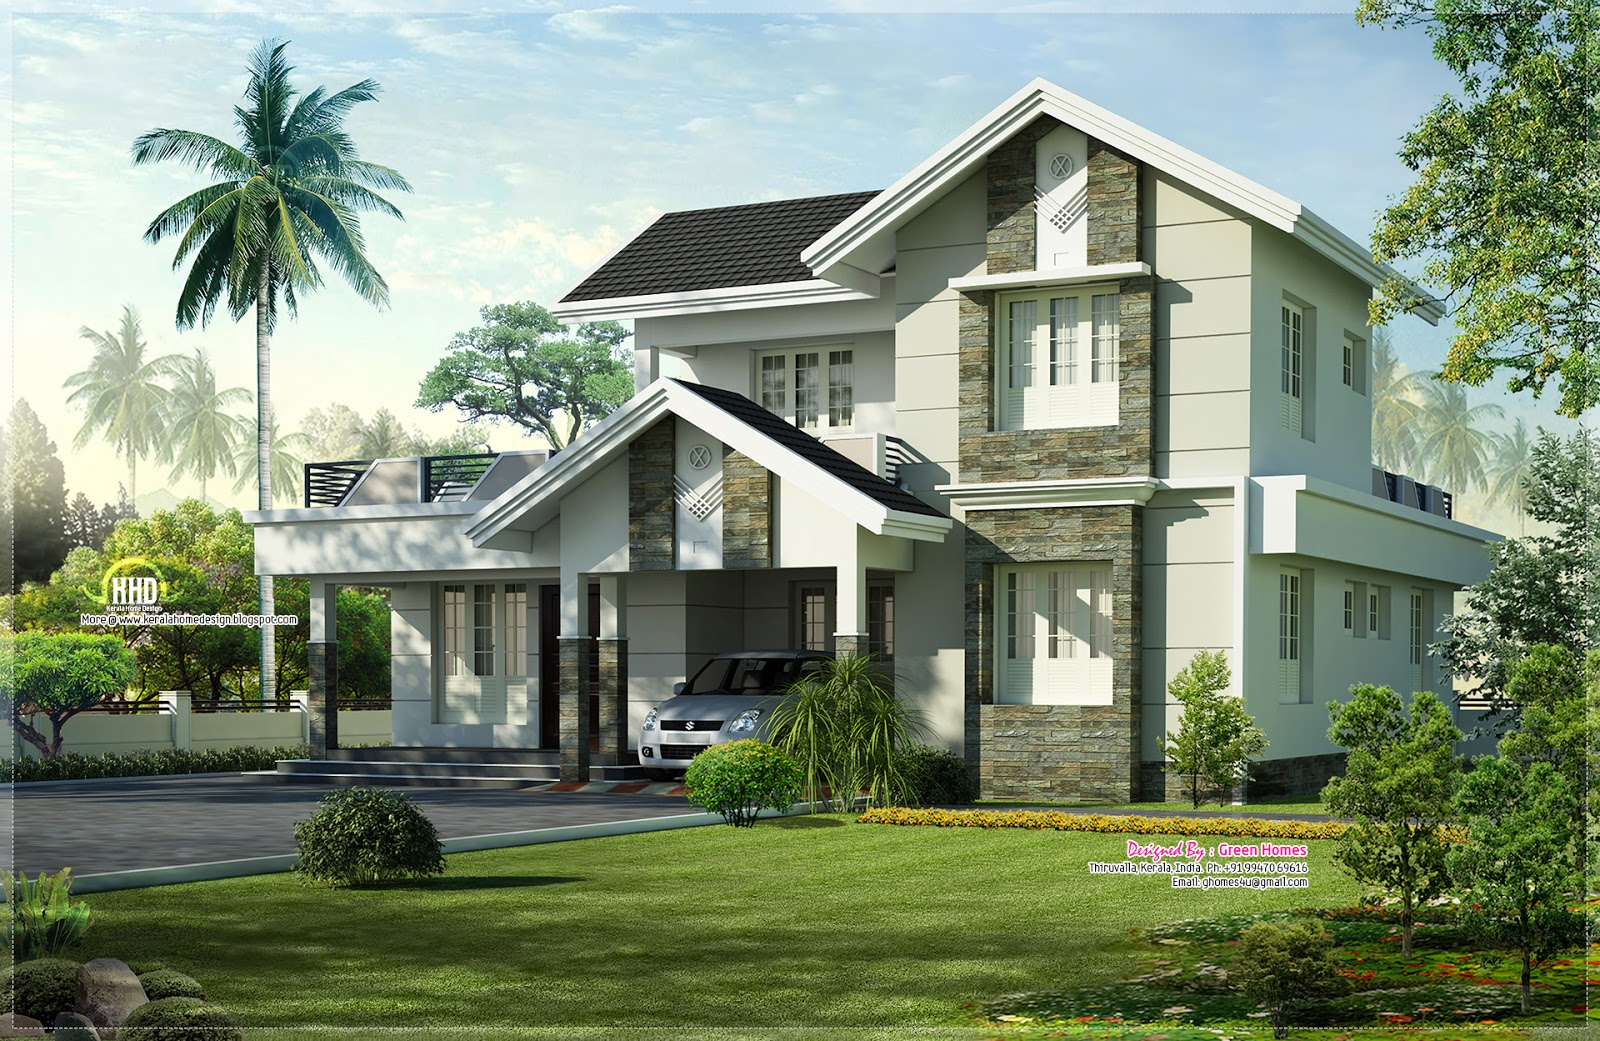 1975 nice home exterior design home kerala plans - Kerala exterior model homes ...